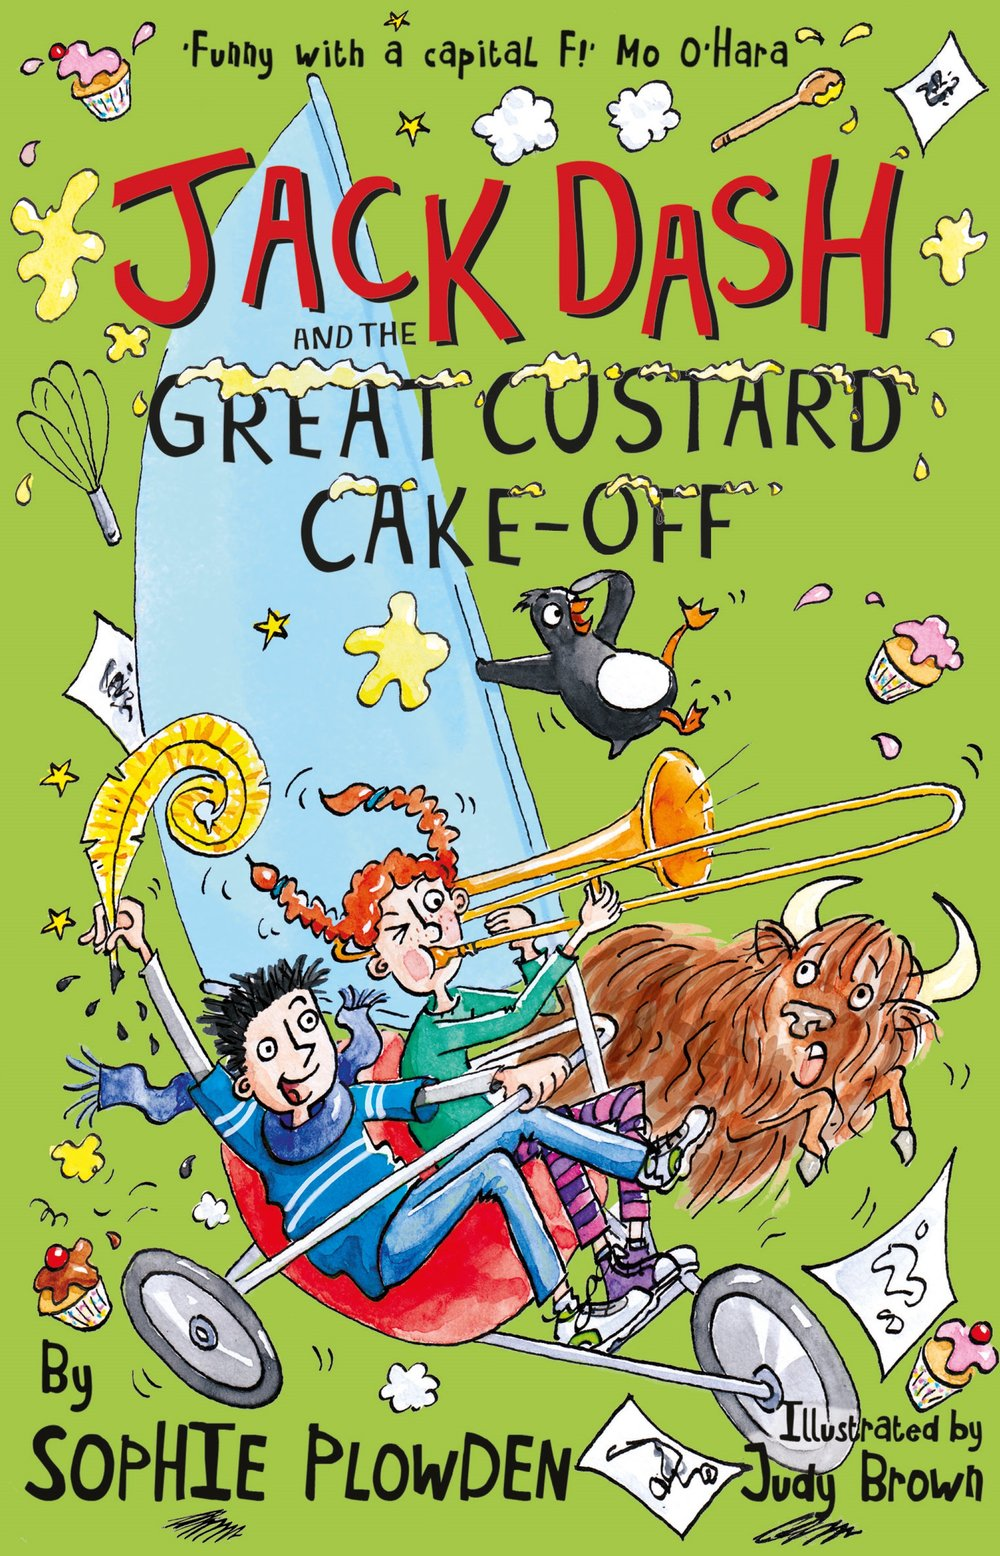 Jack Dash and the Great Custard Cake-Off, his latest and funniest adventure